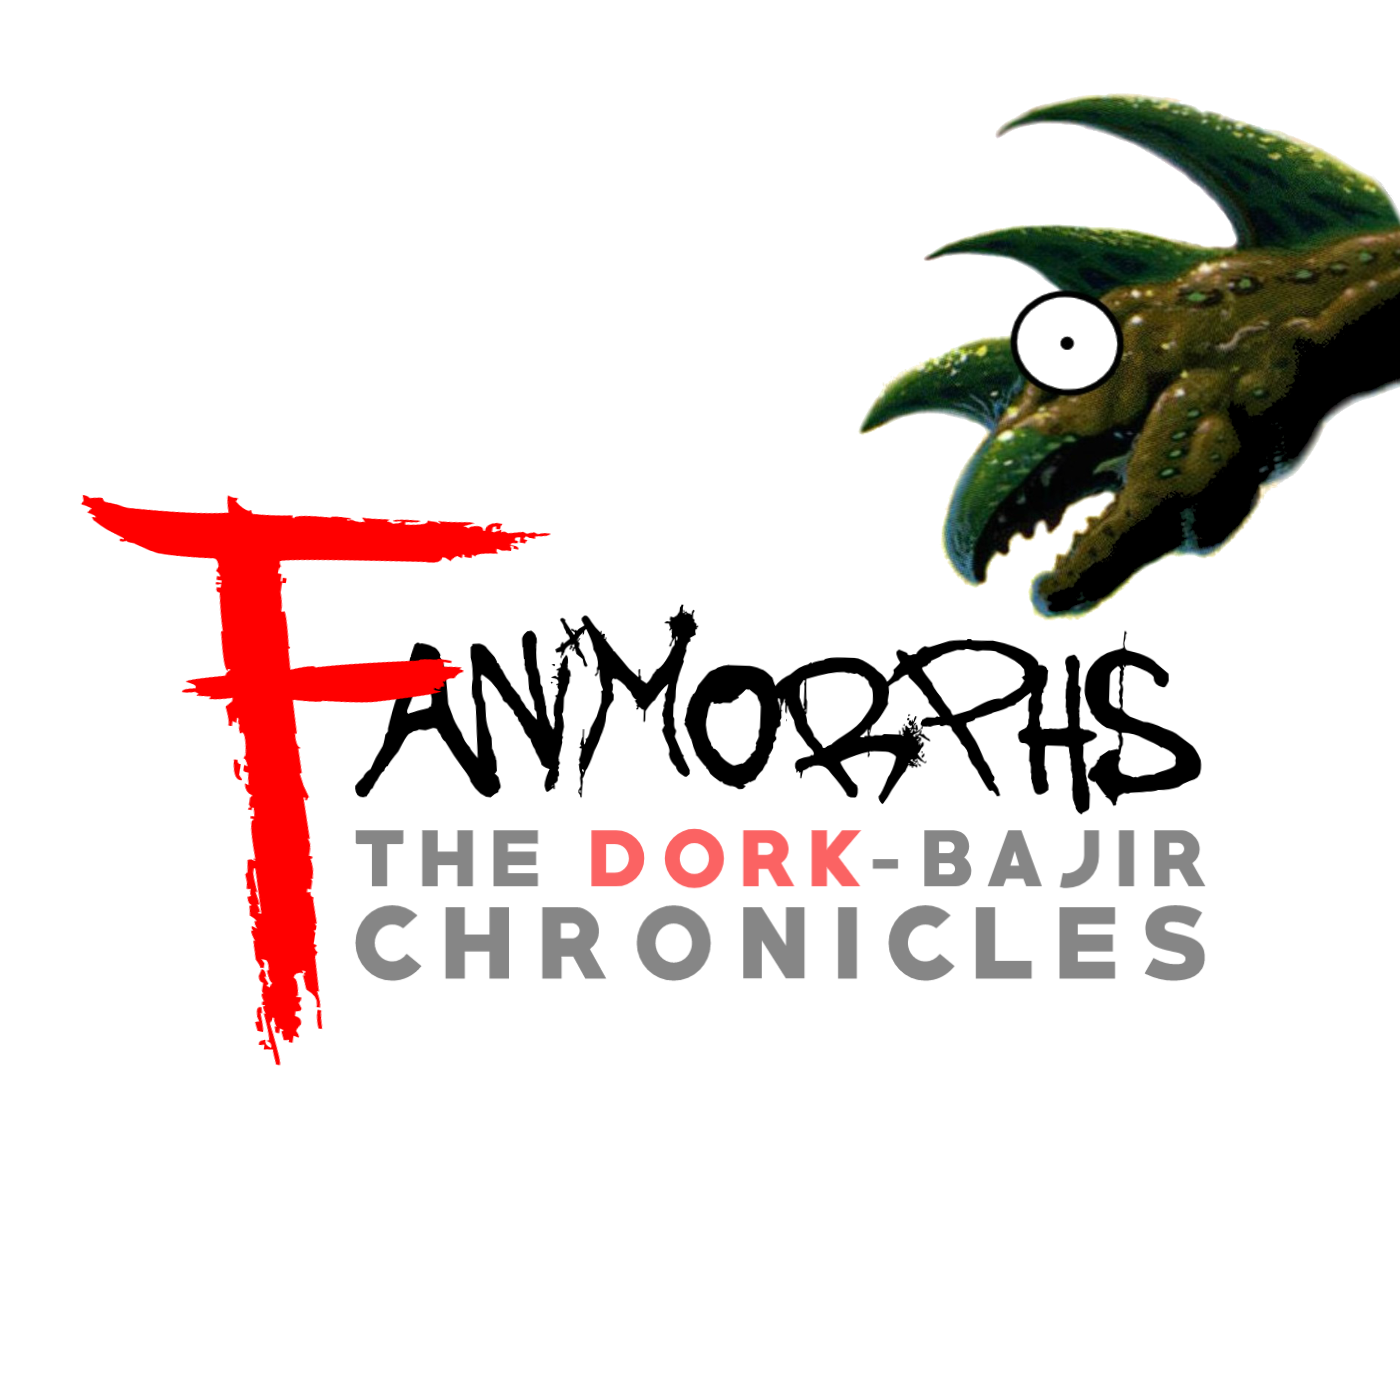 logo for Fanimorphs The Dork-Bajir Chronicles